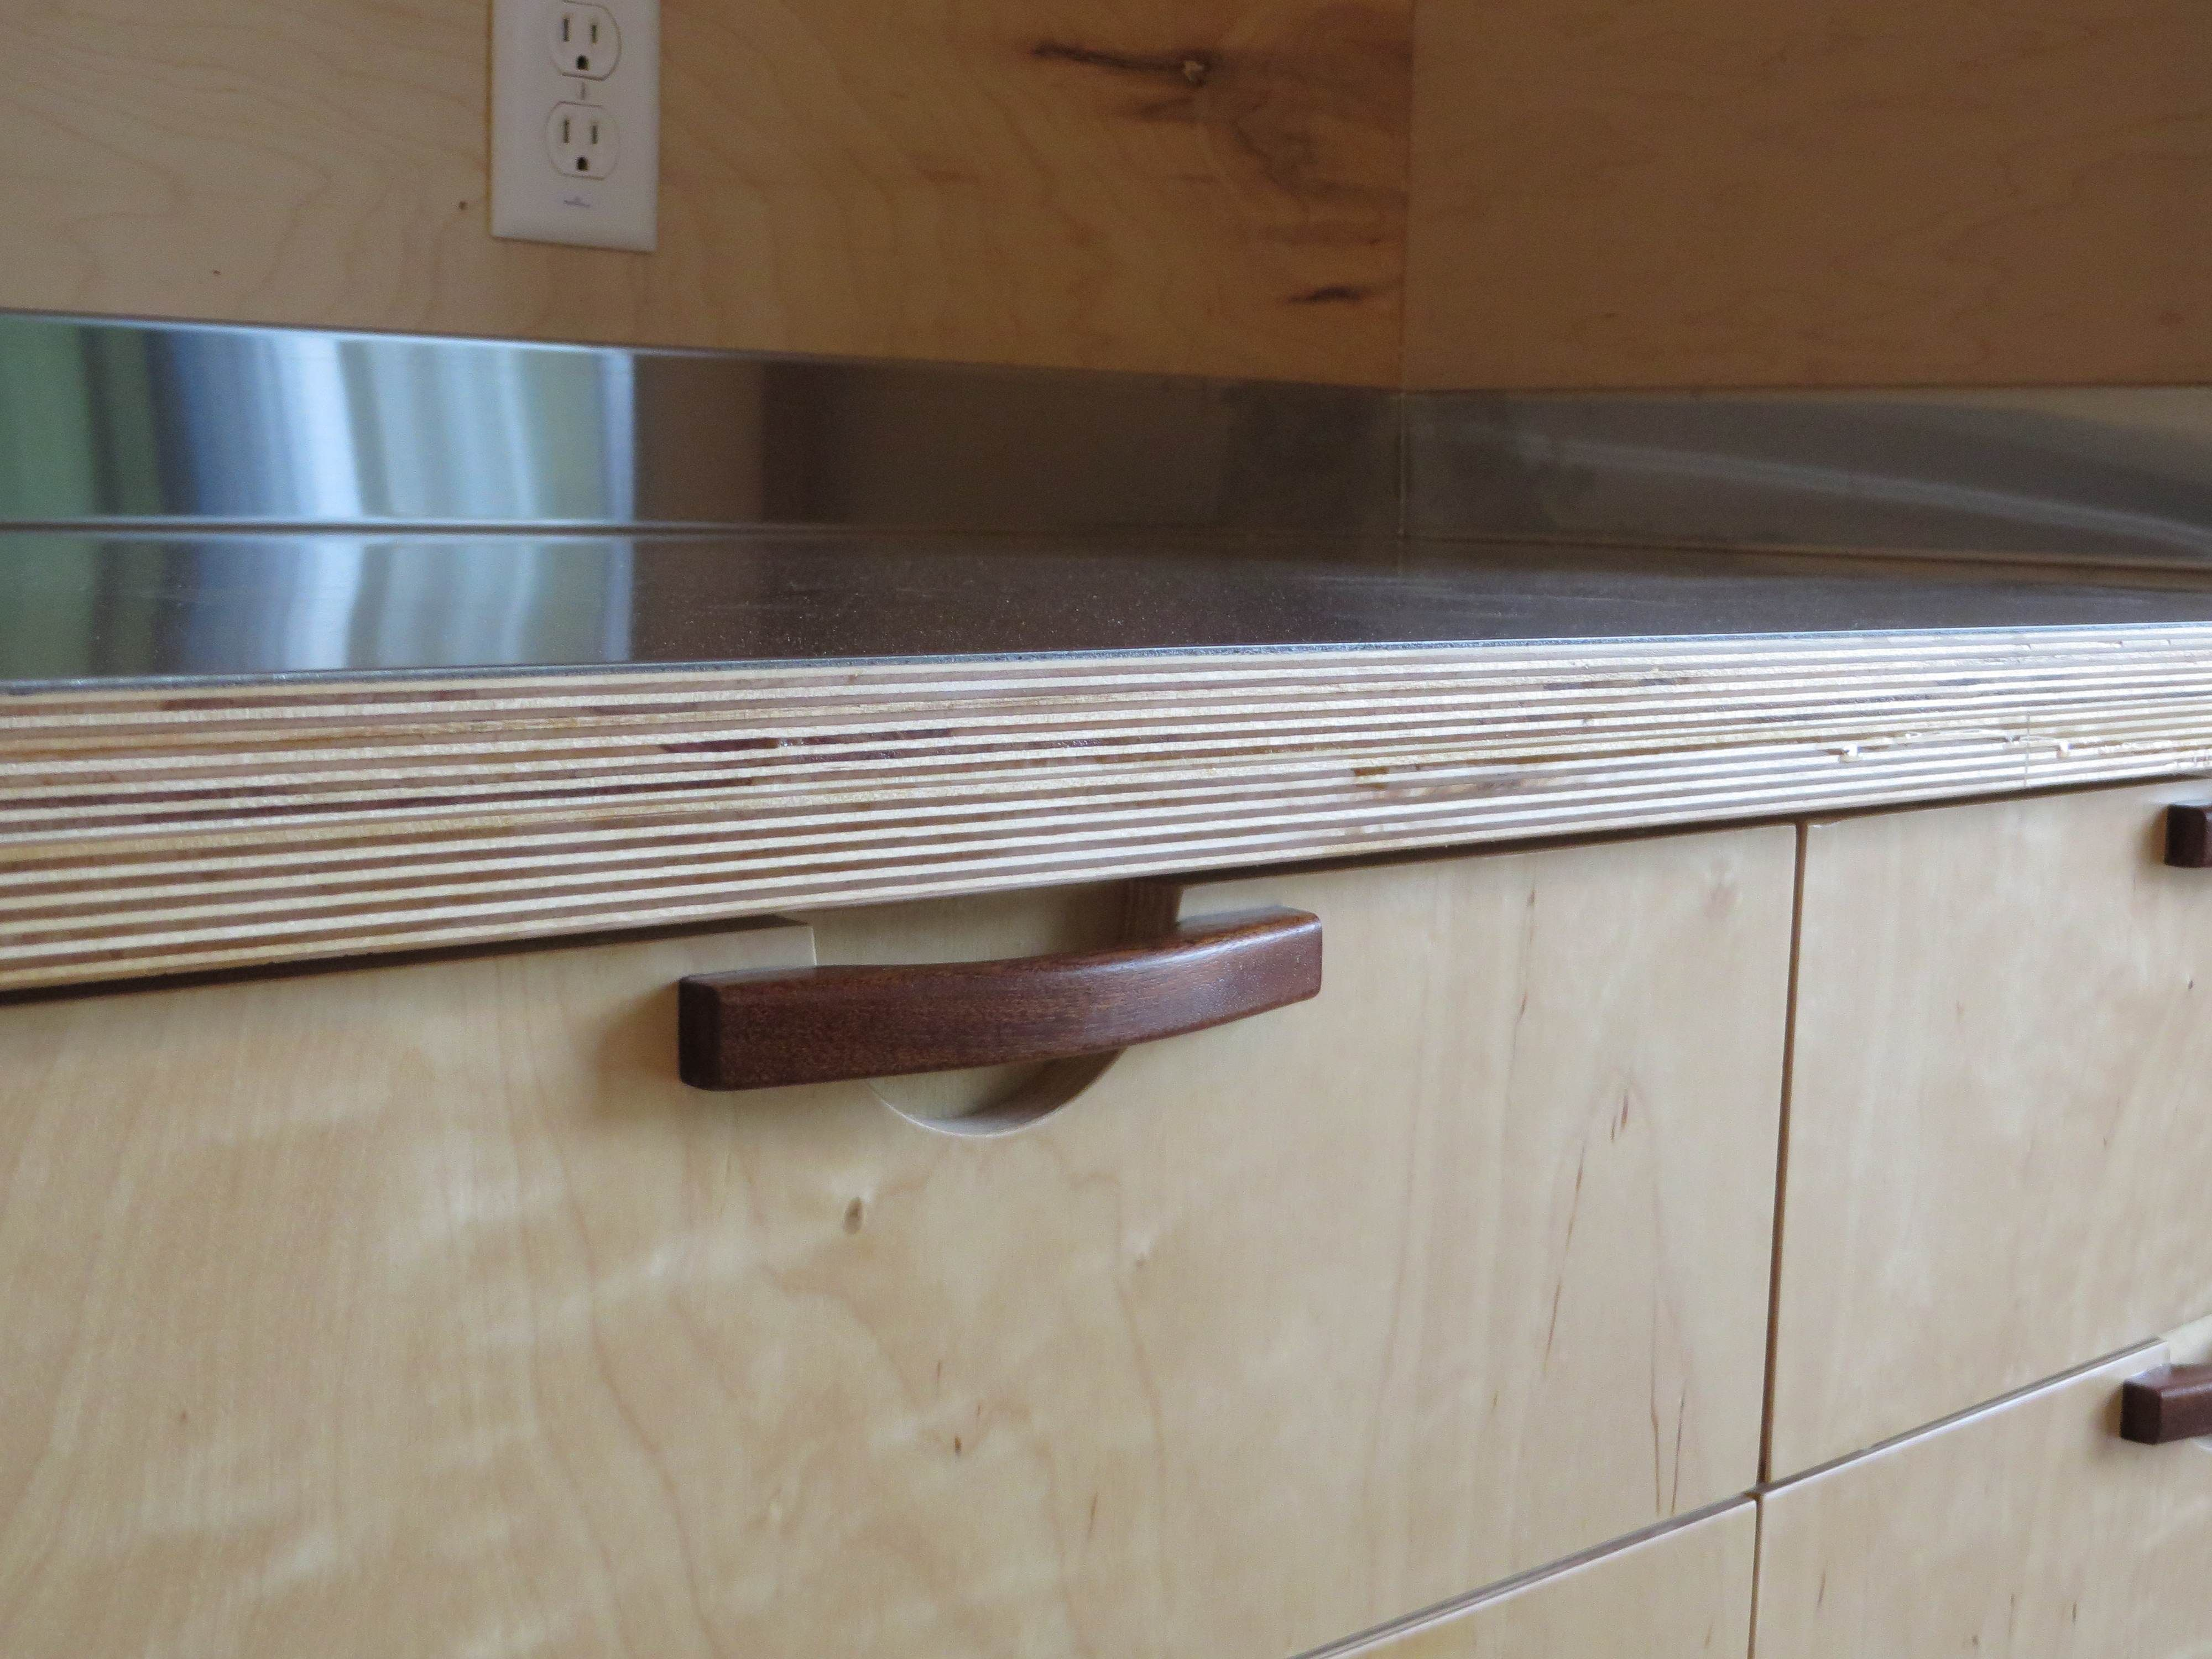 Solid plywood kitchen cabinets - Stainless Steel Laminated To Baltic Birch Woodweb S Laminating And Solid Surfacing Forum